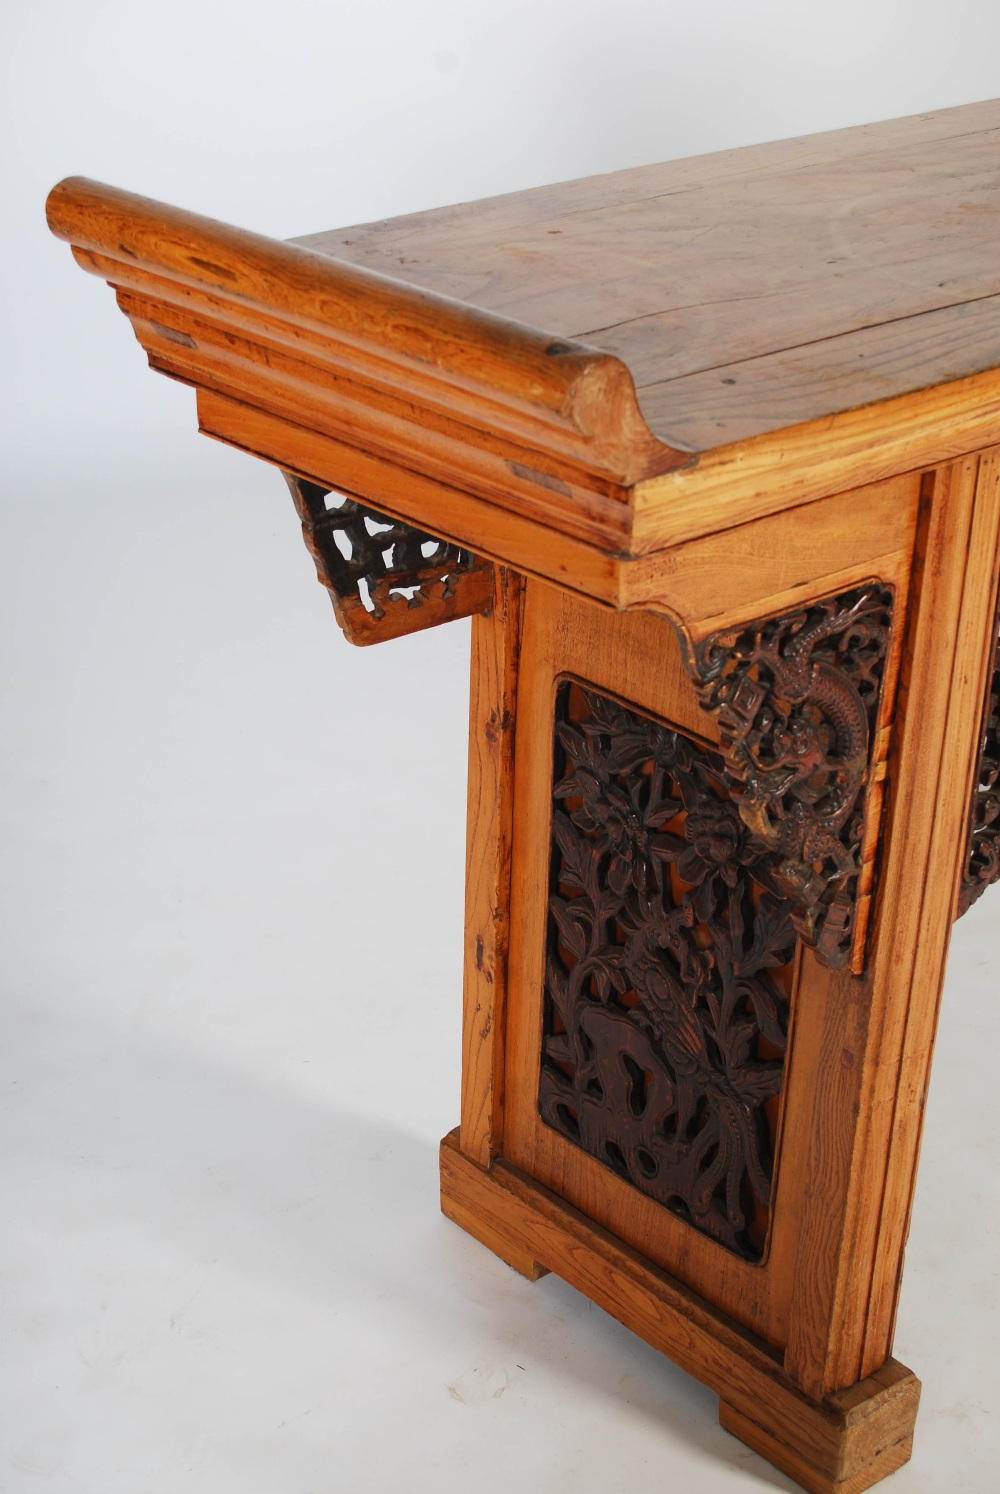 Lot 109 - A Chinese elm wood altar table, the rectangular top with scroll carved ends, raised on two